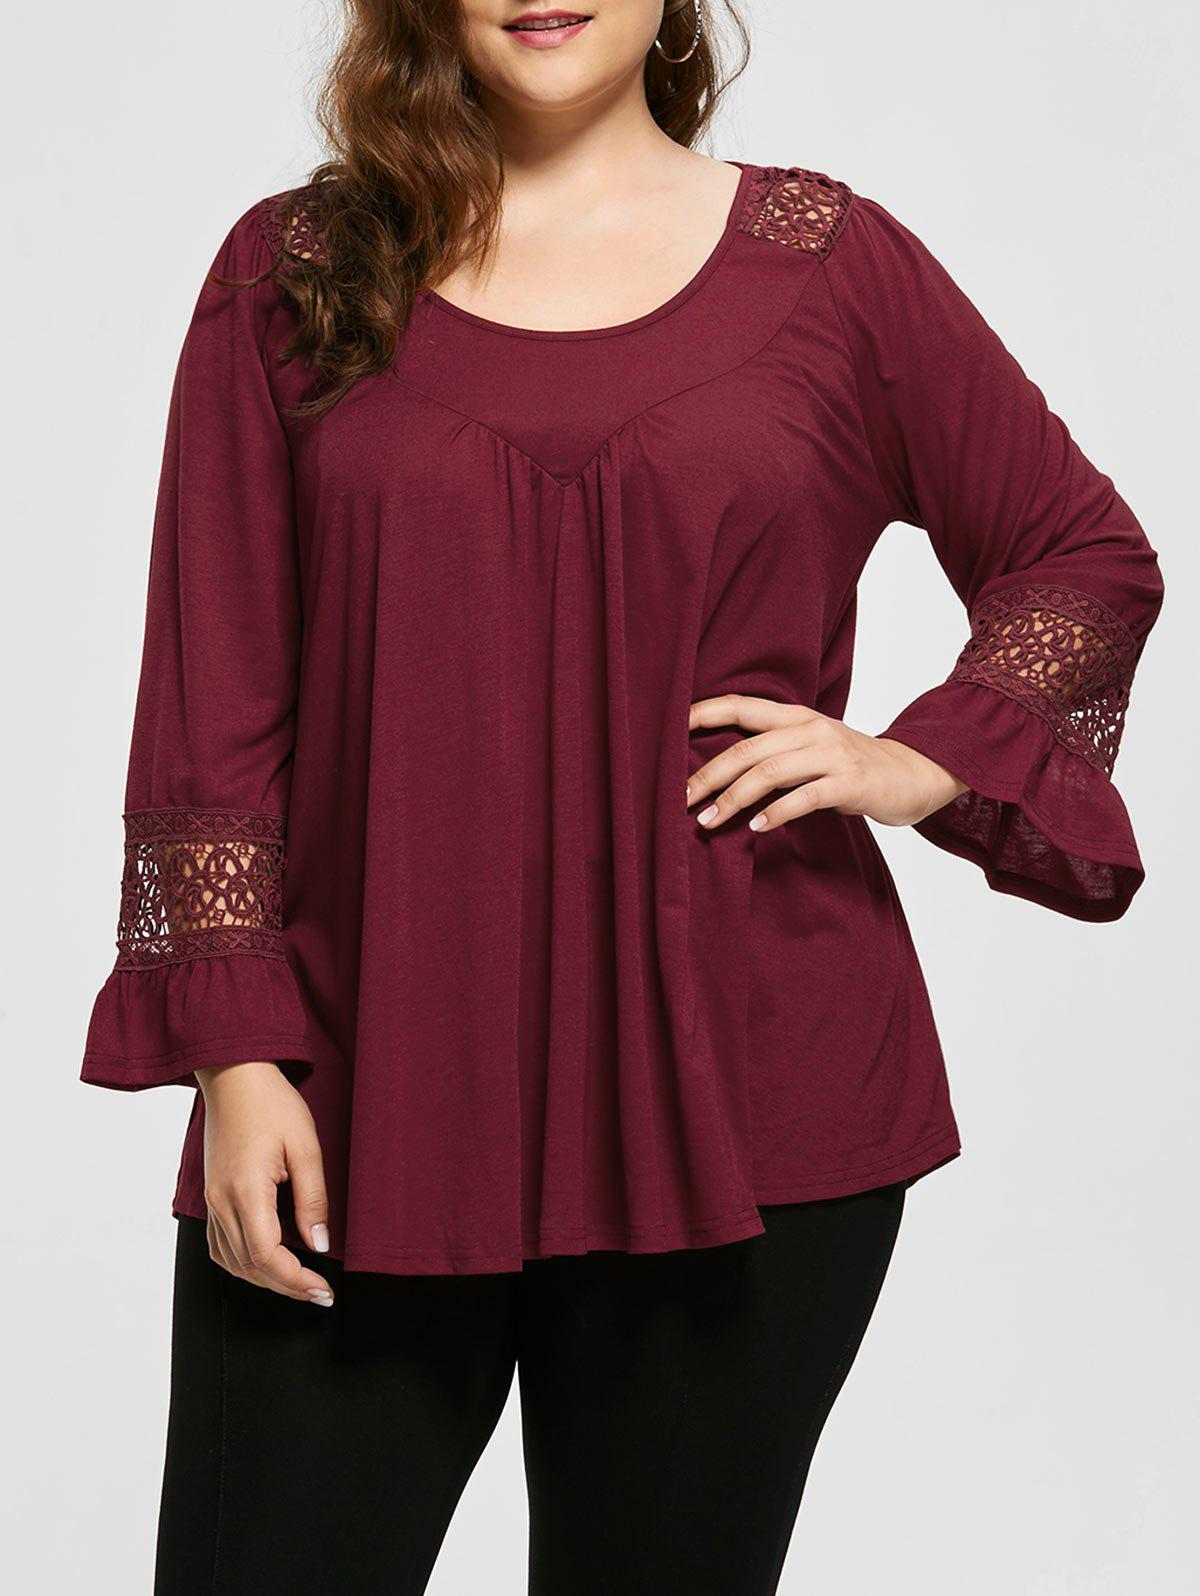 Plus Size Crochet Insert Long SLeeve TopWOMEN<br><br>Size: 5XL; Color: WINE RED; Material: Polyester; Shirt Length: Regular; Sleeve Length: Full; Collar: Round Neck; Style: Casual; Season: Fall,Spring; Pattern Type: Solid; Weight: 0.3700kg; Package Contents: 1 x Top;